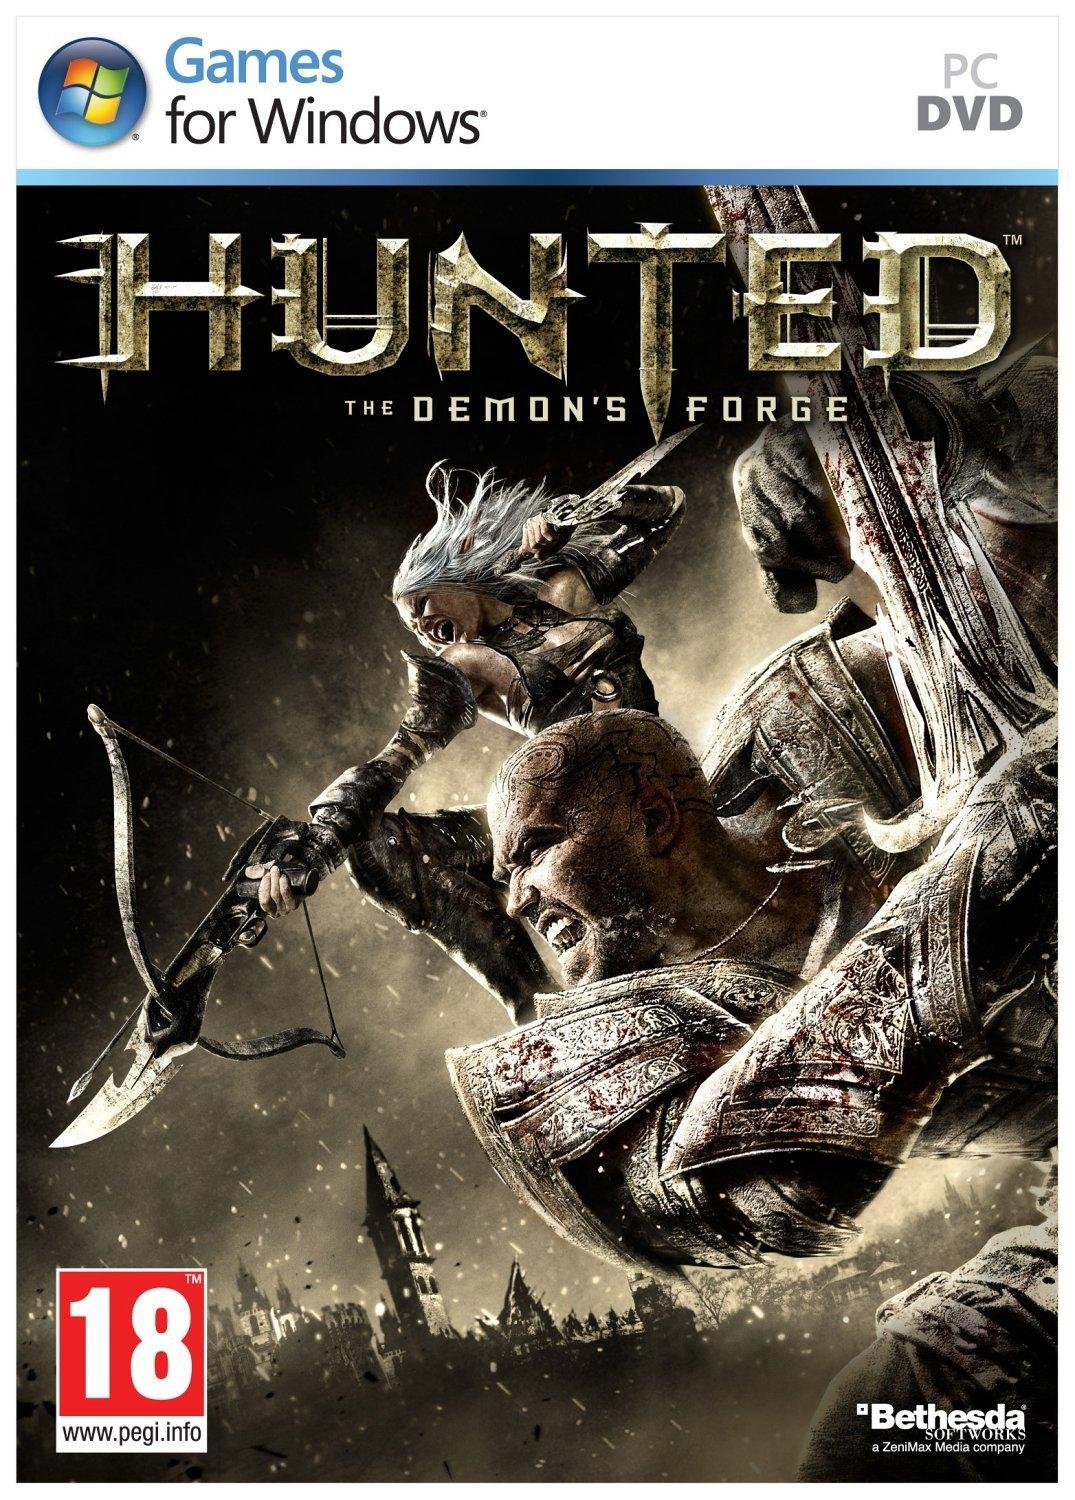 Hunted: Кузня демонов / Hunted: The Demon's Forge (2011) Русская версия [RePack]